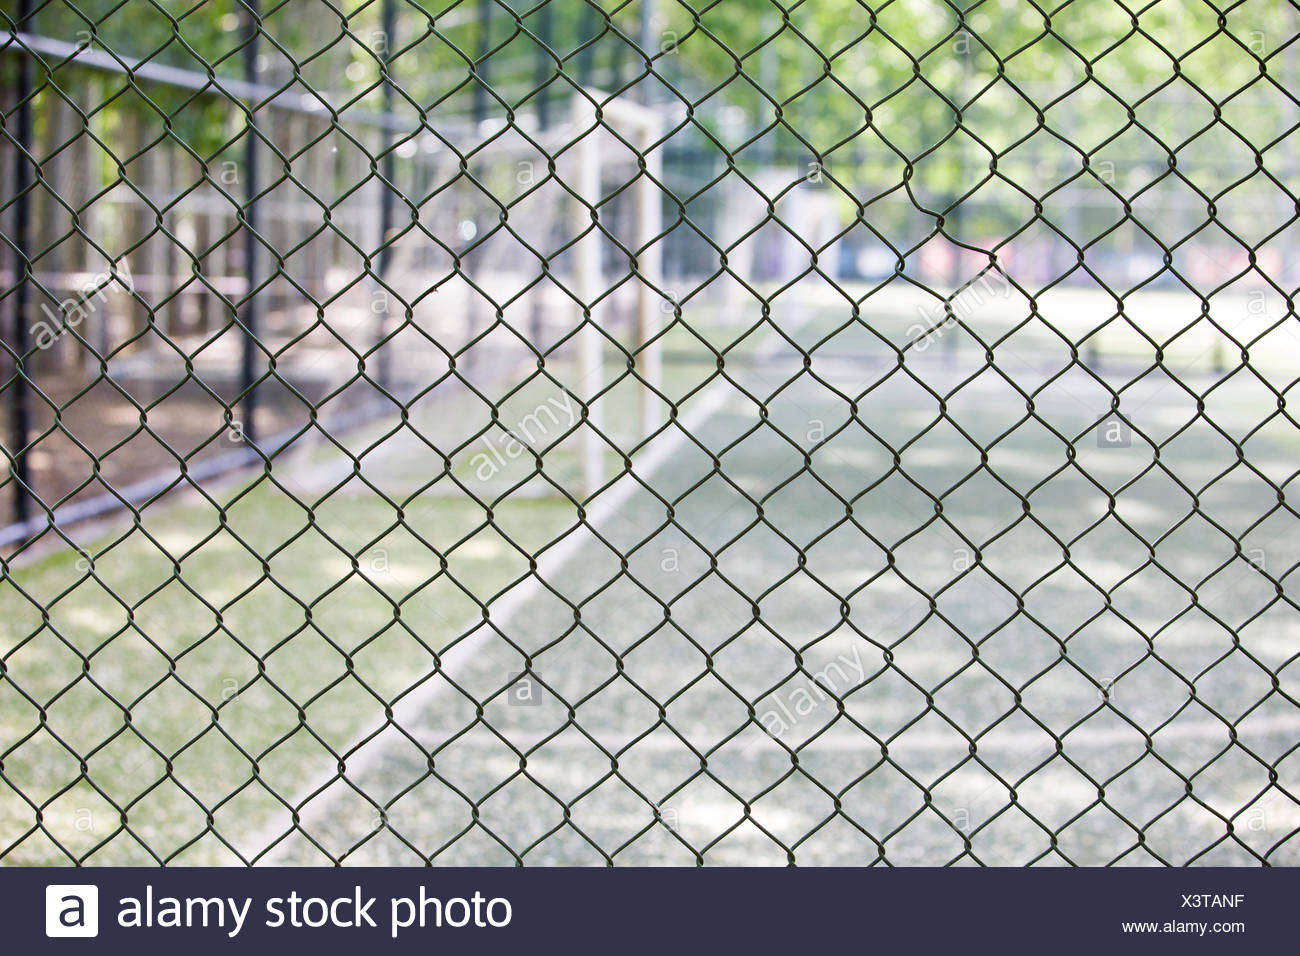 Soccer field behind fence Stock Photo: 277745147 - Alamy